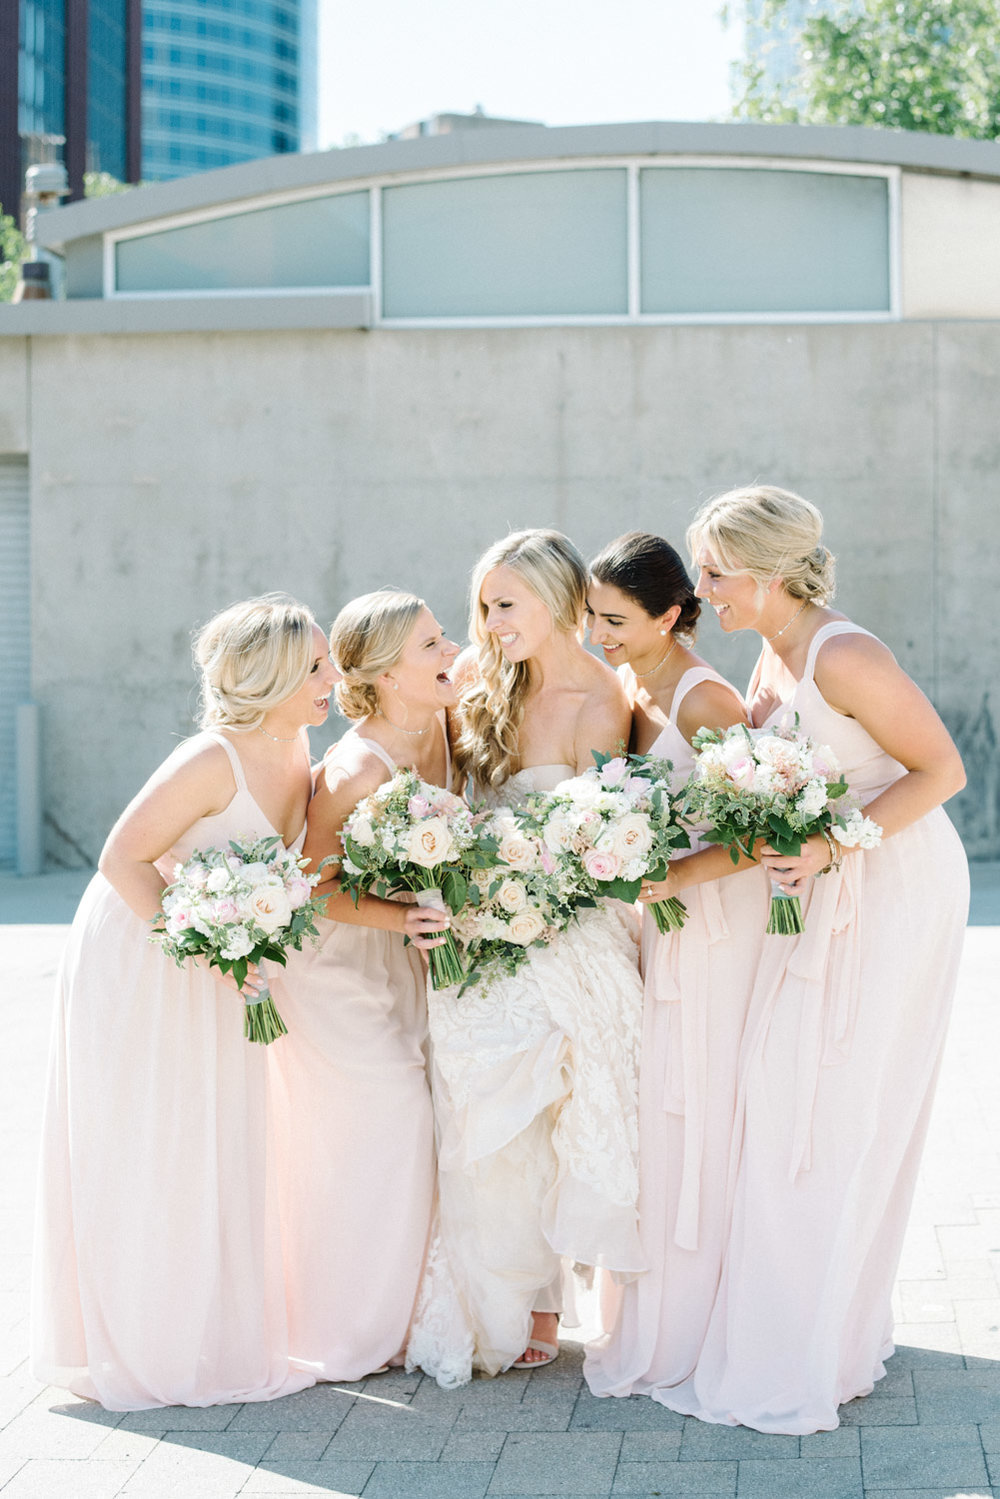 Grand Rapids Michigan Wedding by Michelle Lange Photography-28.jpg